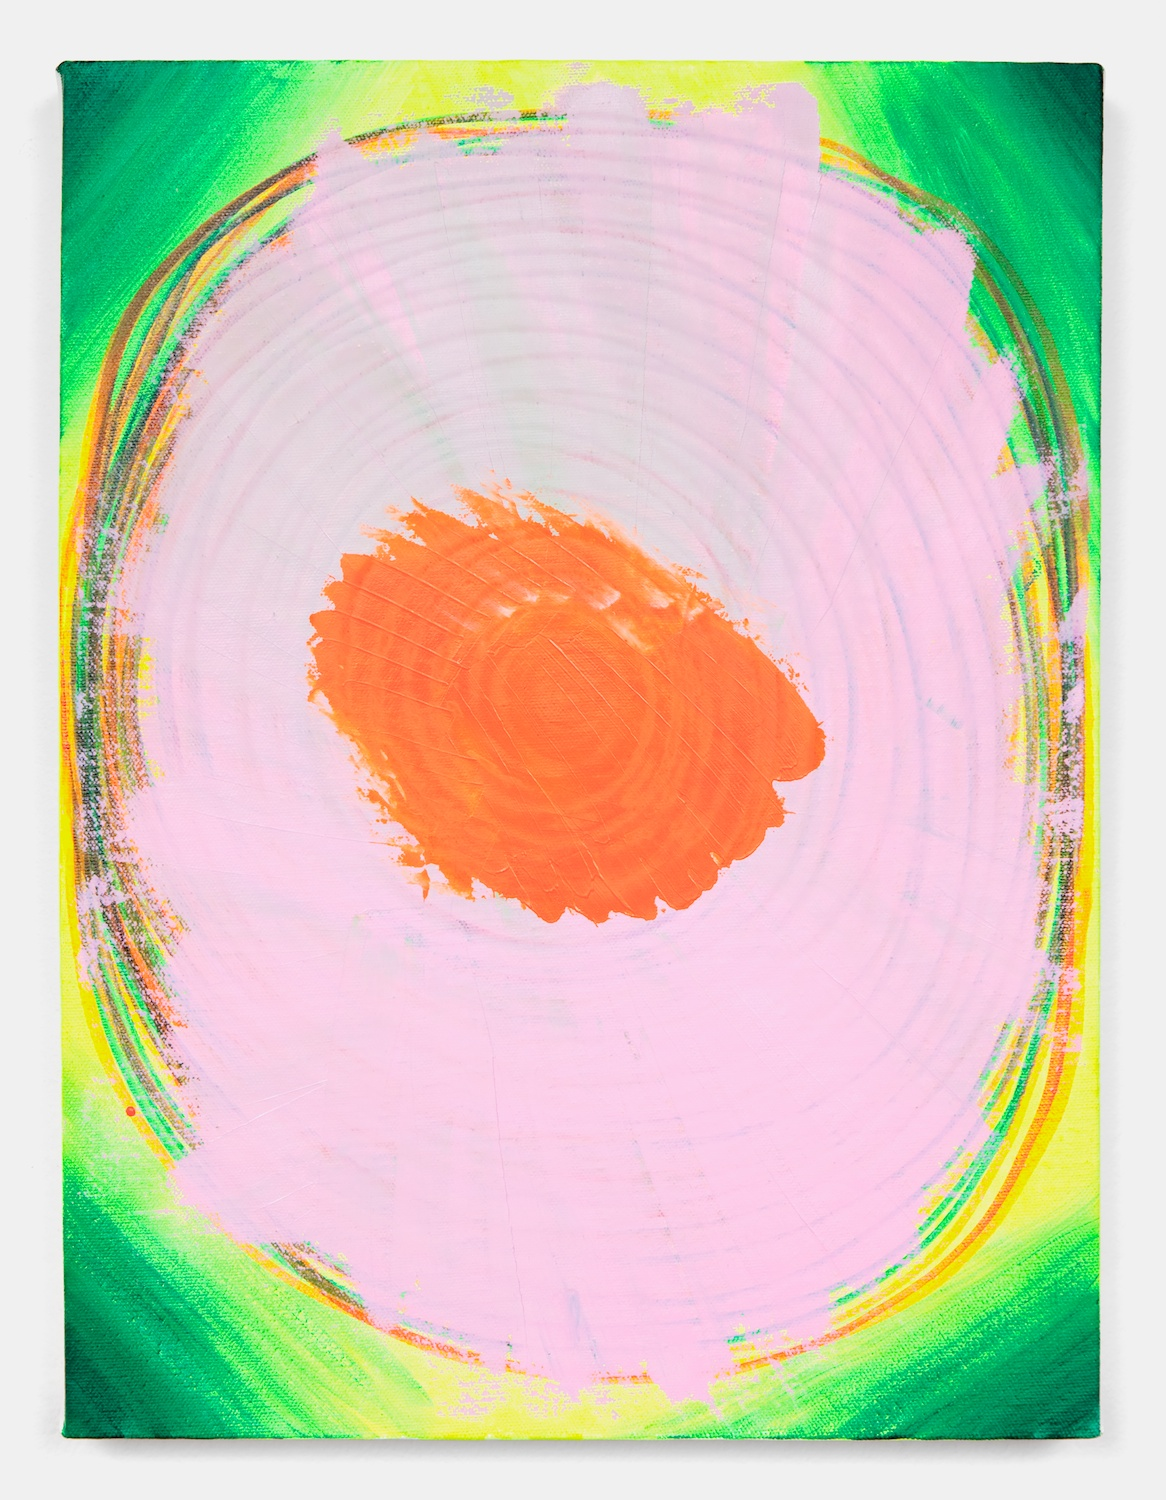 Joanne Greenbaum  Untitled  2011 Oil, acrylic and mixed media on linen 16h x 12w in JG053